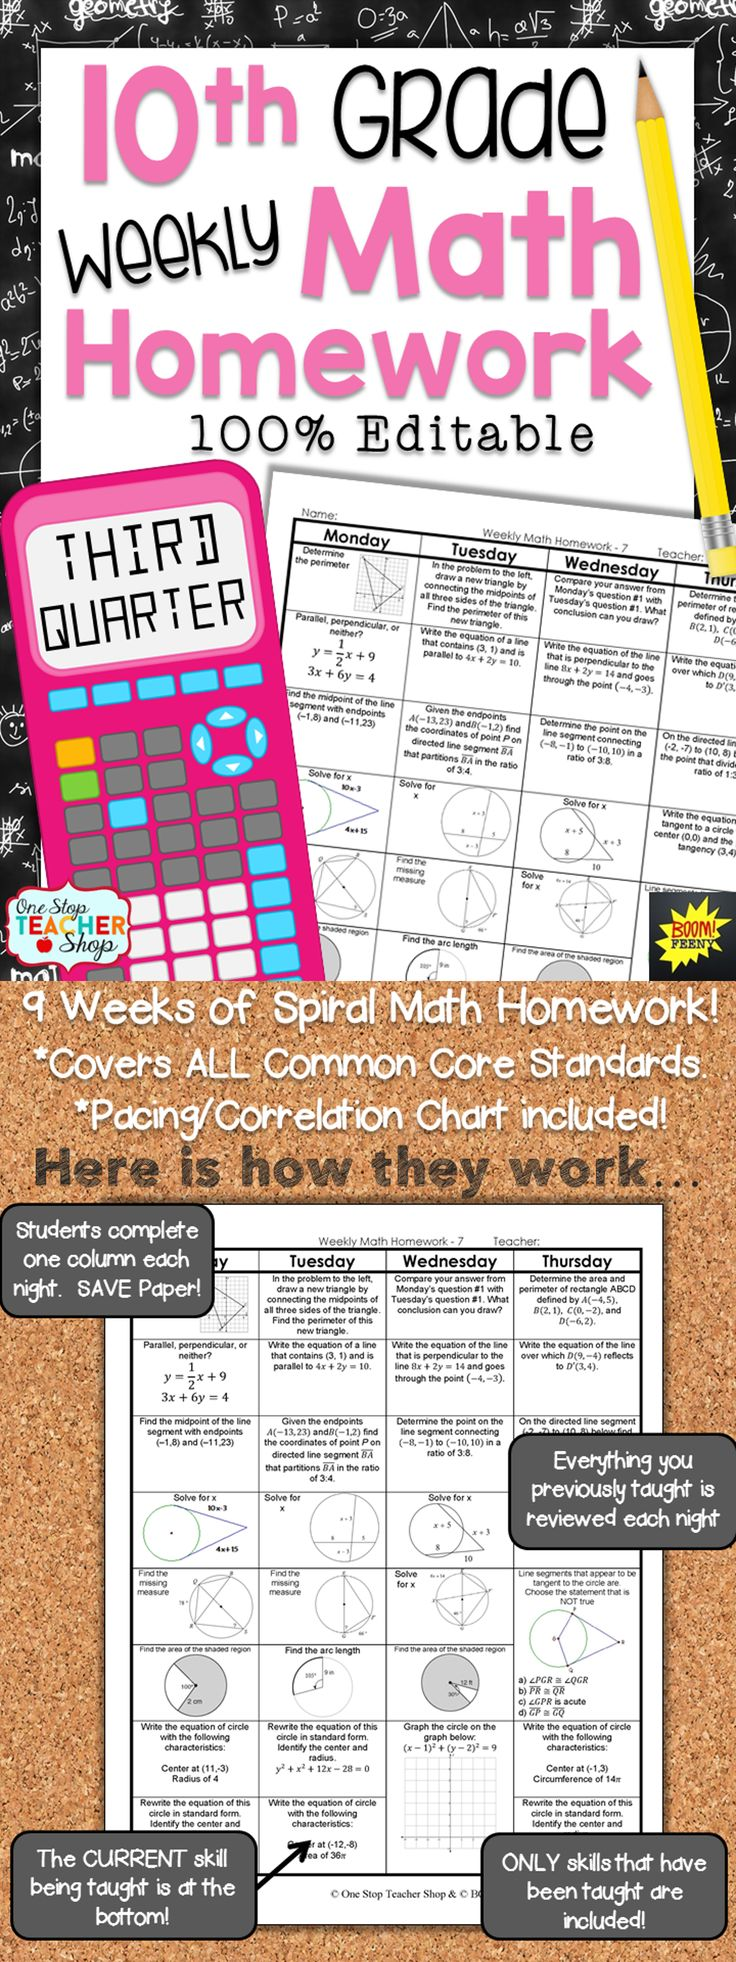 TENTH GRADE Geometry Spiral Math Homework, Warm up, or Math Review for the THIRD QUARTER!! -- 100% EDITABLE -- Aligned with the High School Common Core Geometry Standards. ANSWER KEYS included. Paid